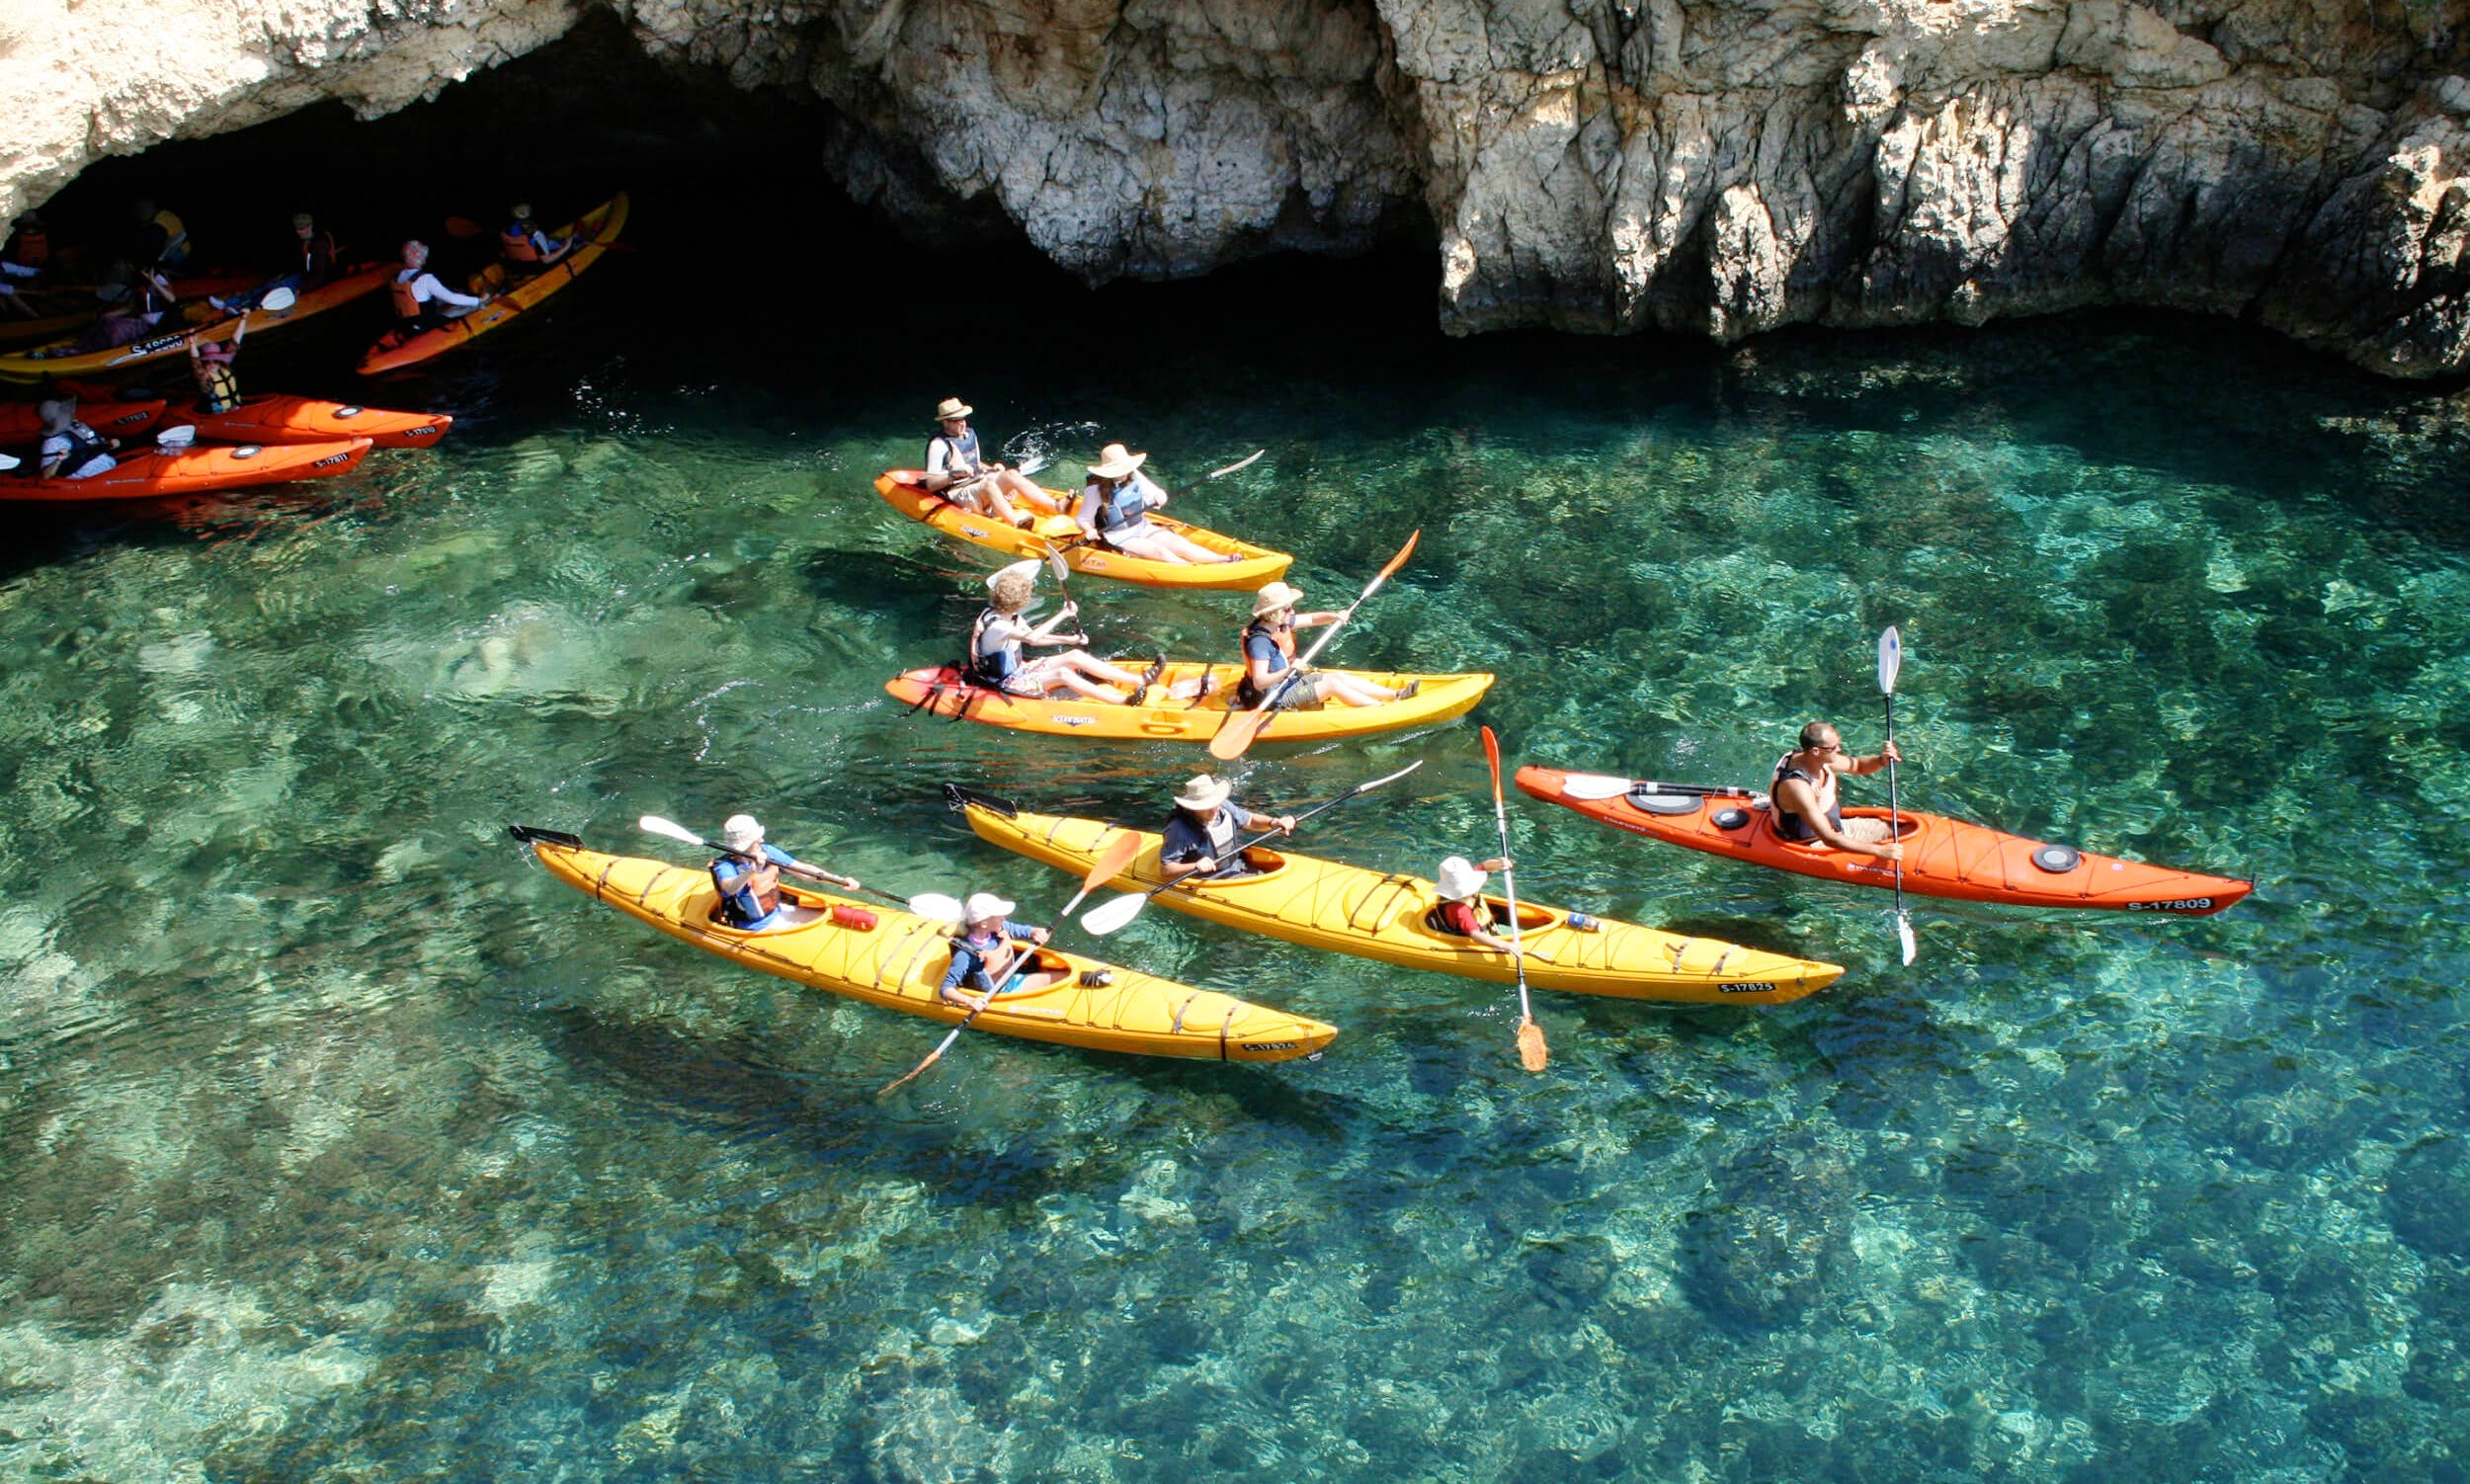 Come Enjoy A Day Of Sun And Fun Kayaking In Il-Mellieħa, Malta